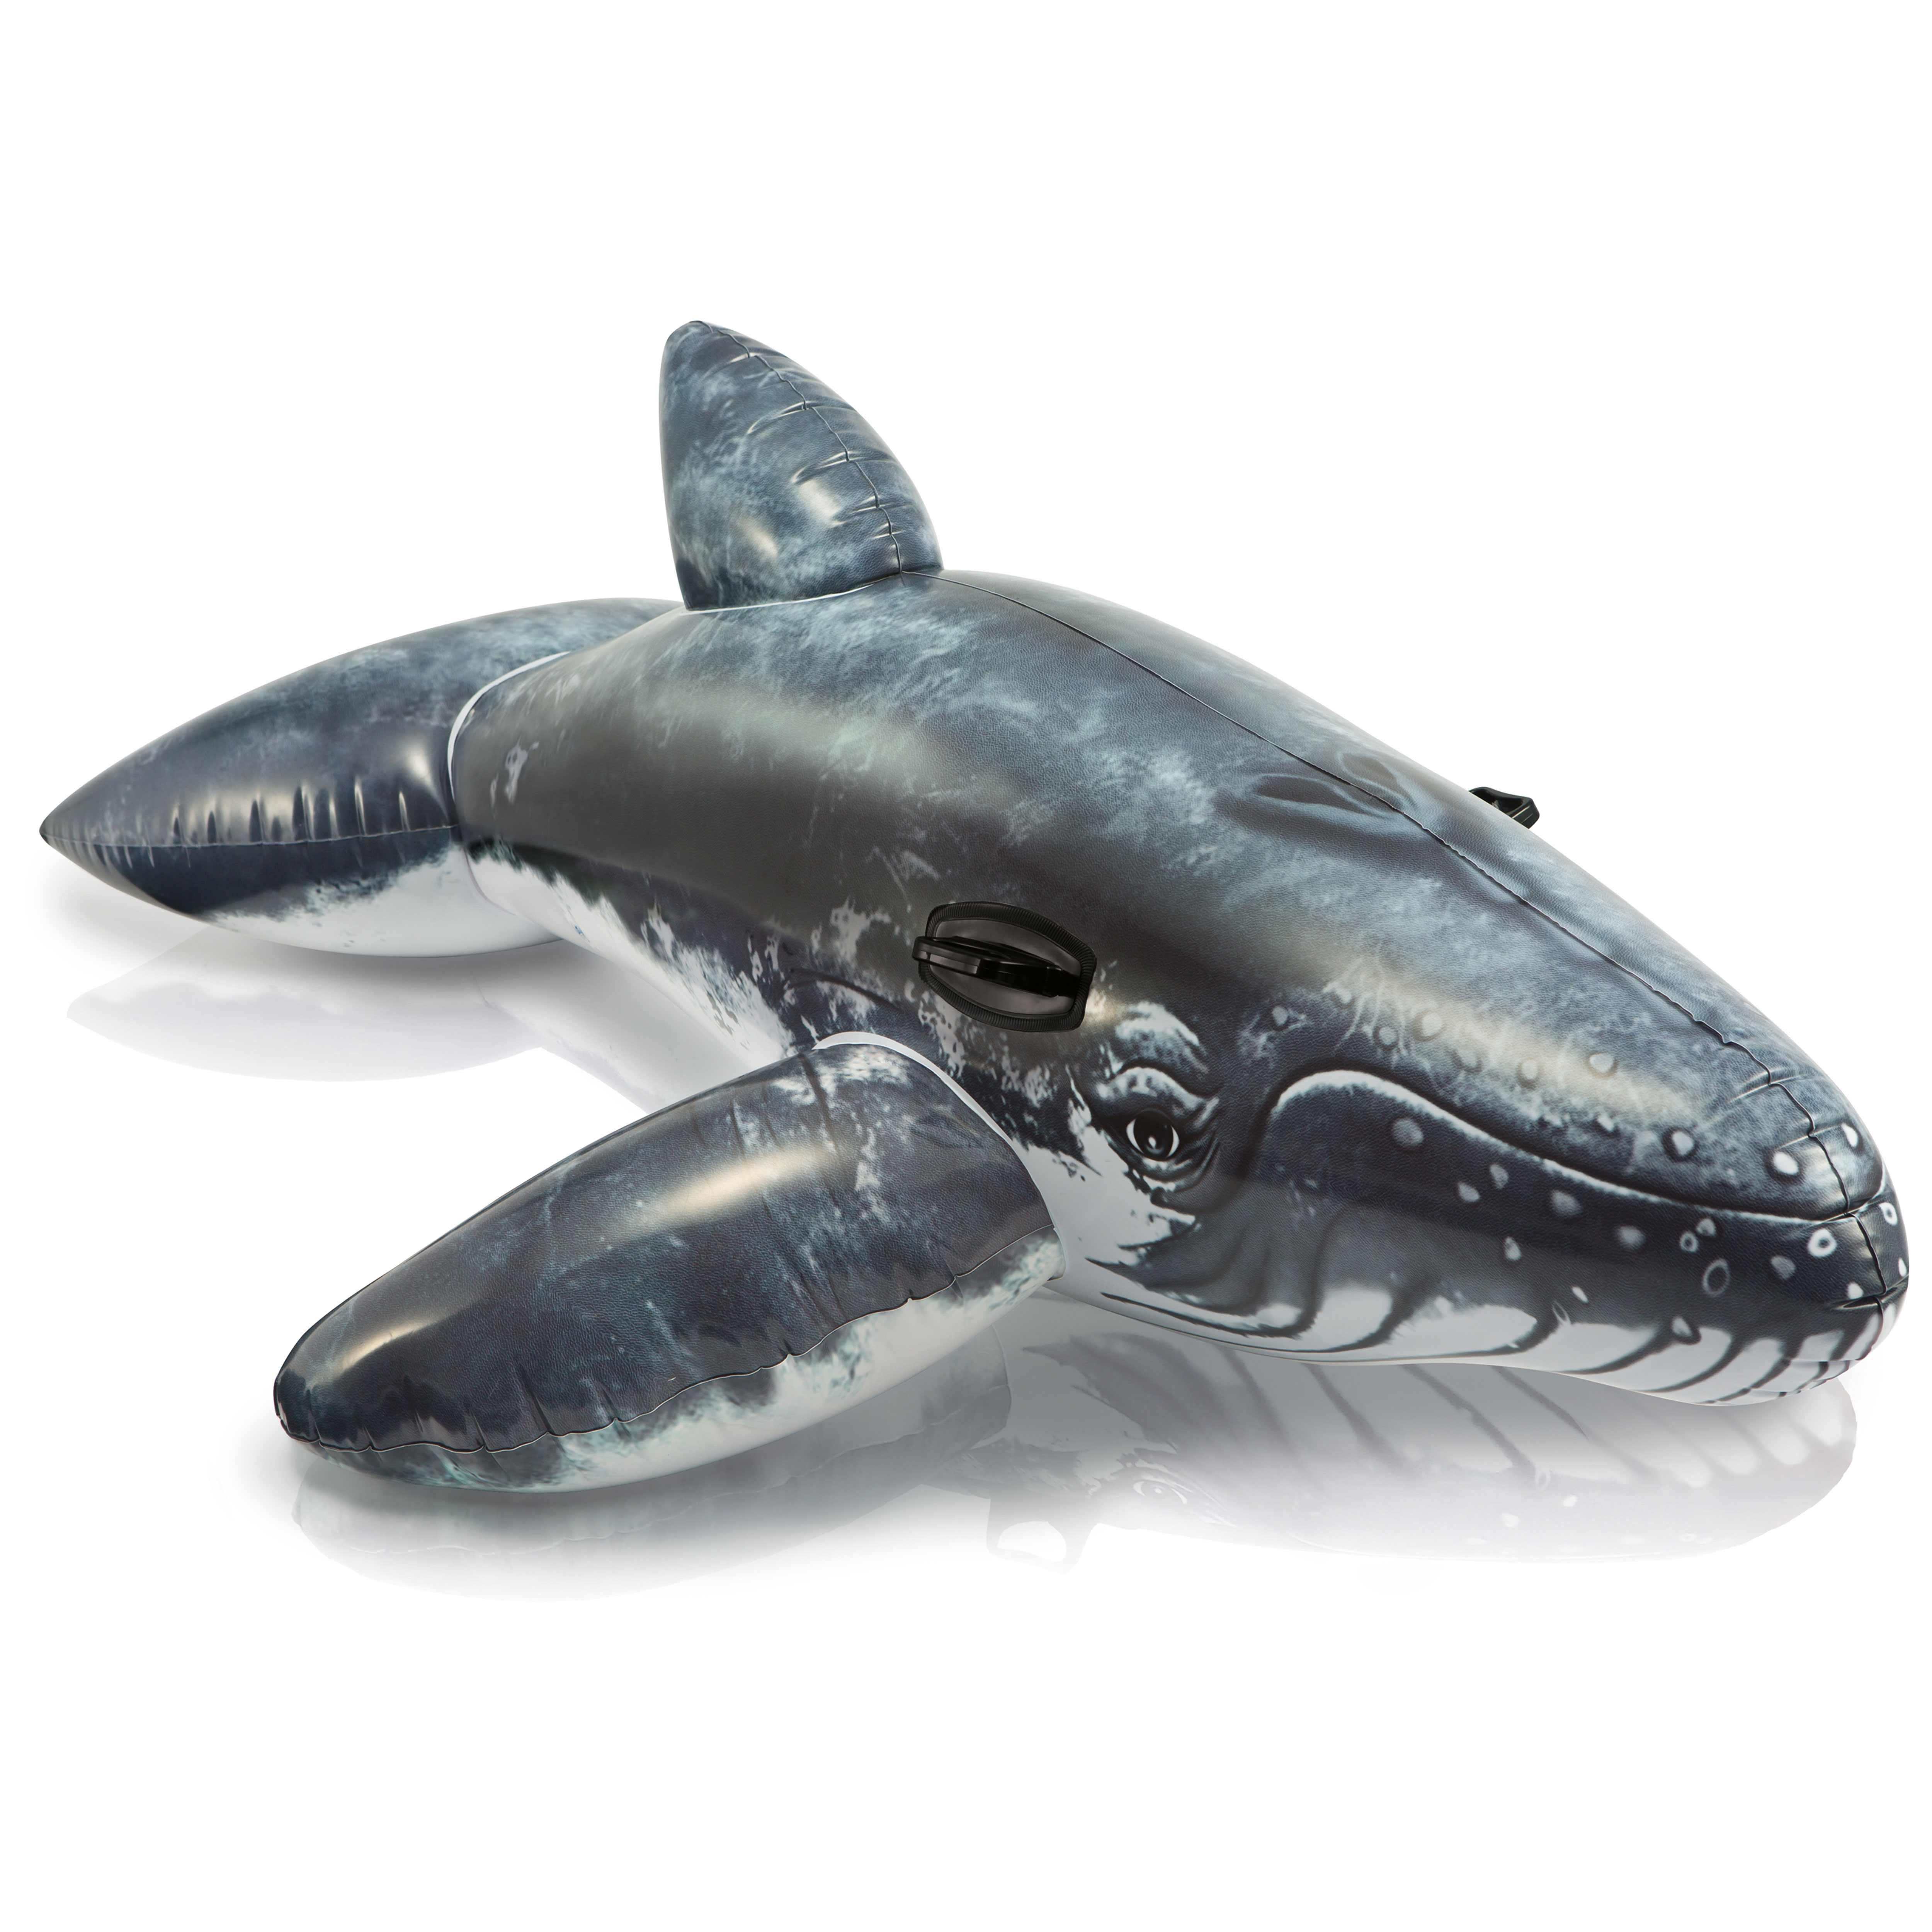 Intex Realistic Whale Ride-On Inflatable Swimming Pool Float - 57530EP